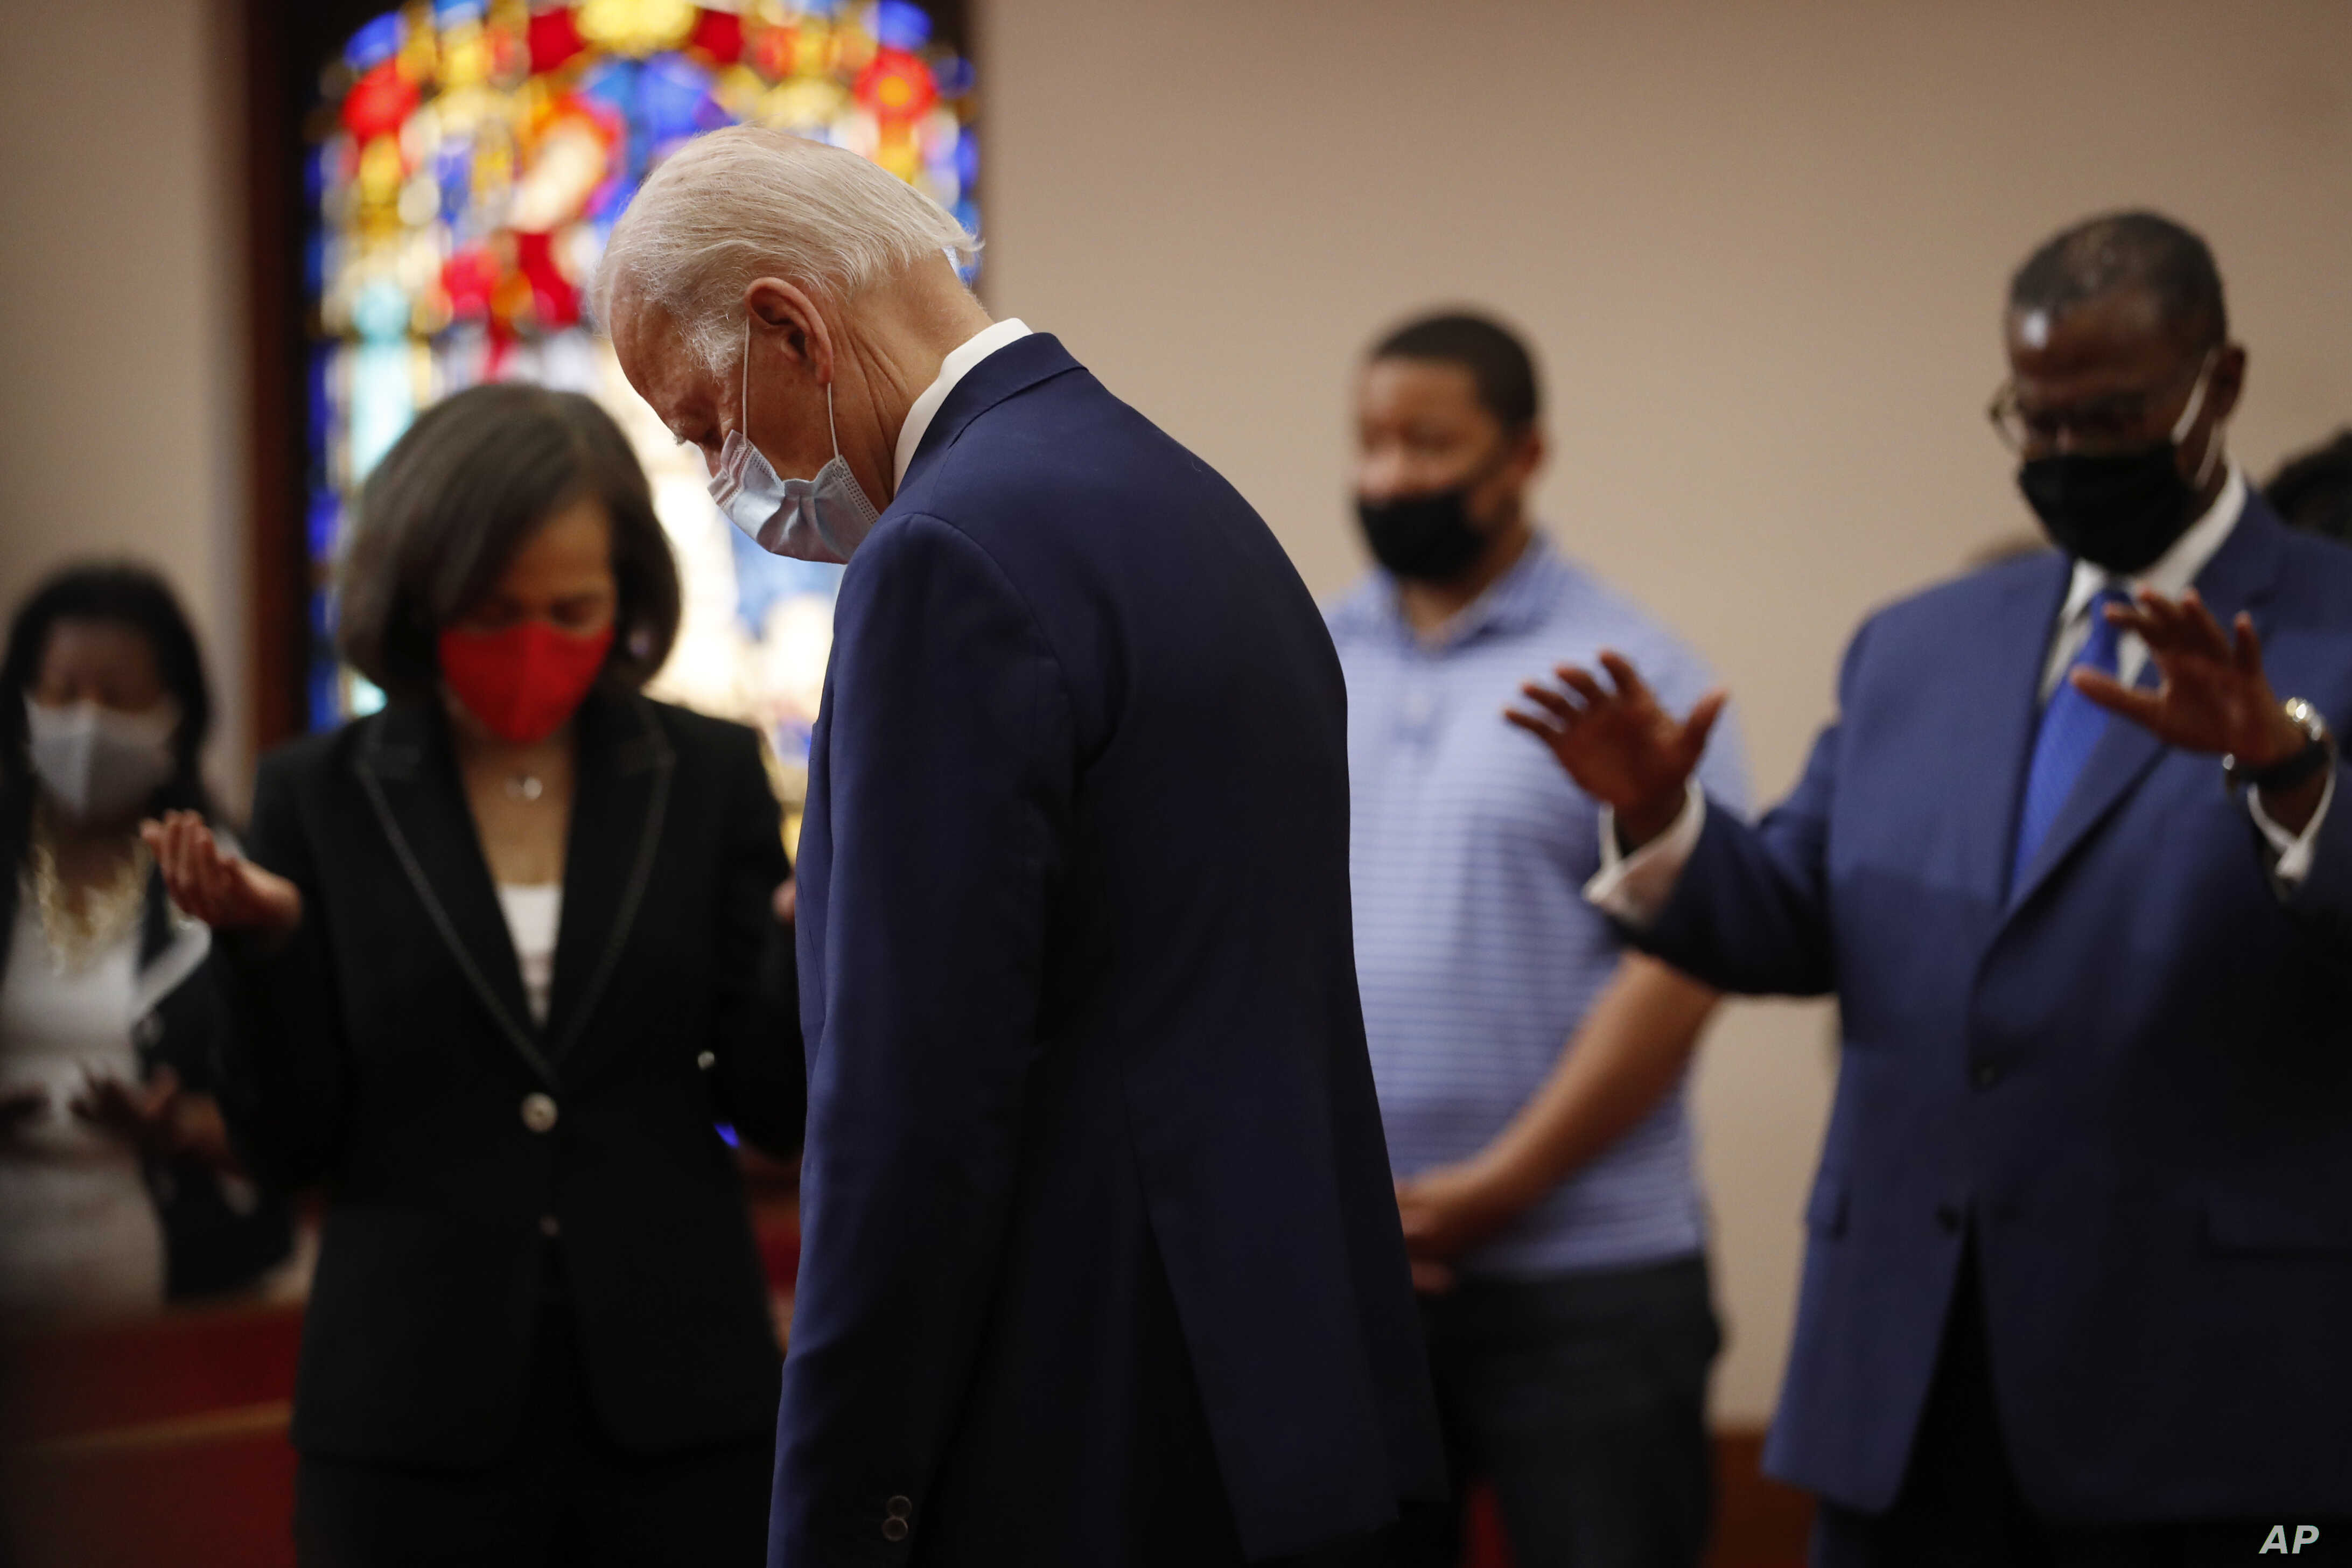 Biden Meets with Black Leaders at Local Church Amid Unrest | Voice of  America - English